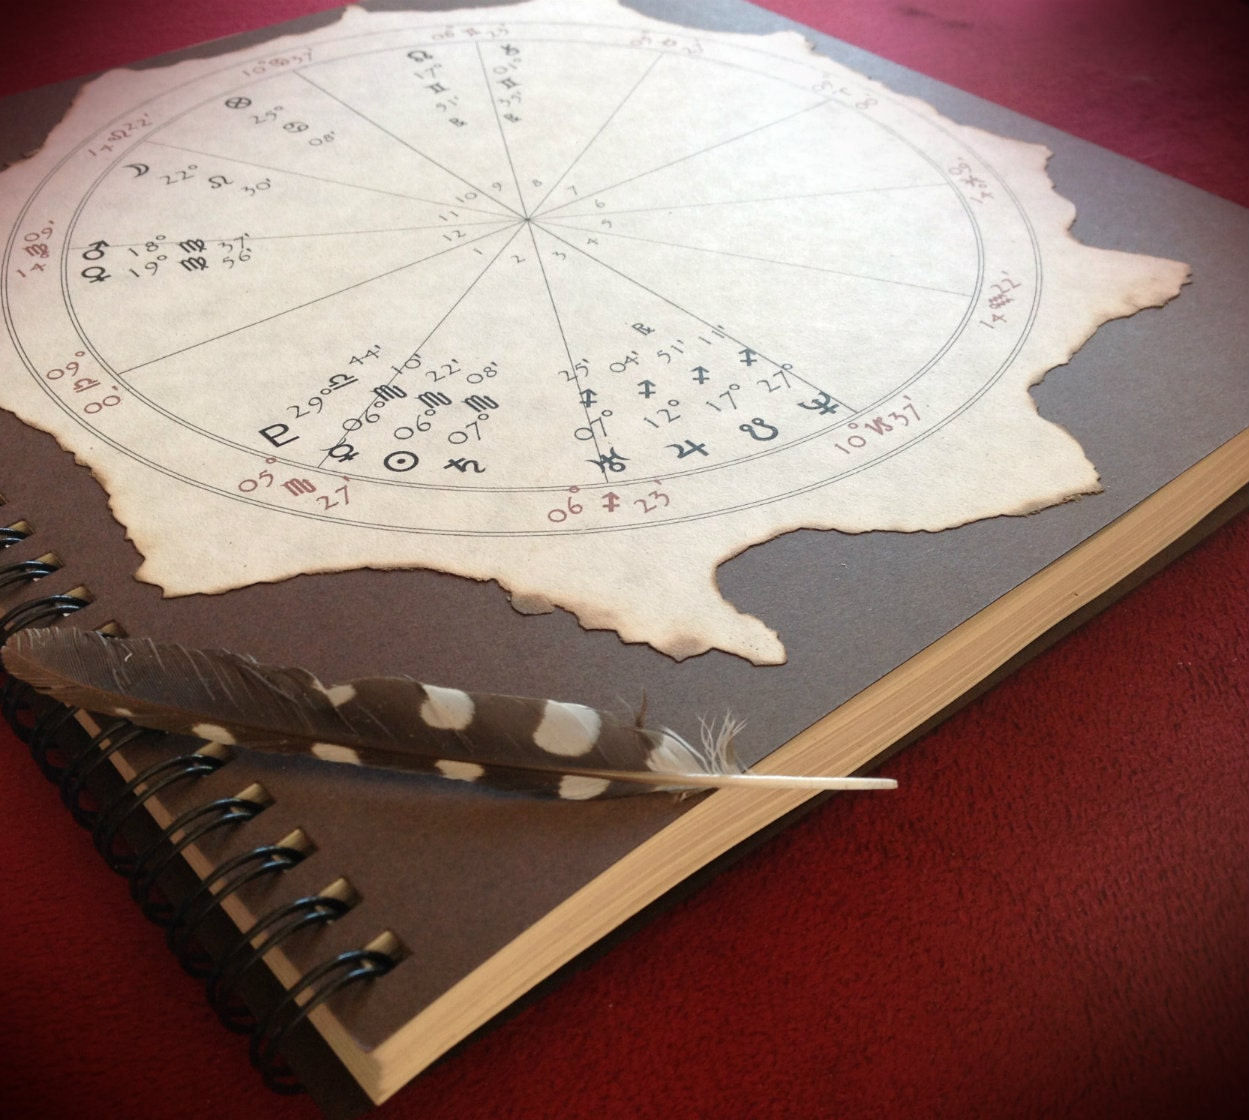 Free zodiac birth chart gallery free any chart examples astrology charts free image collections free any chart examples birth chart free astrology image collections free nvjuhfo Choice Image